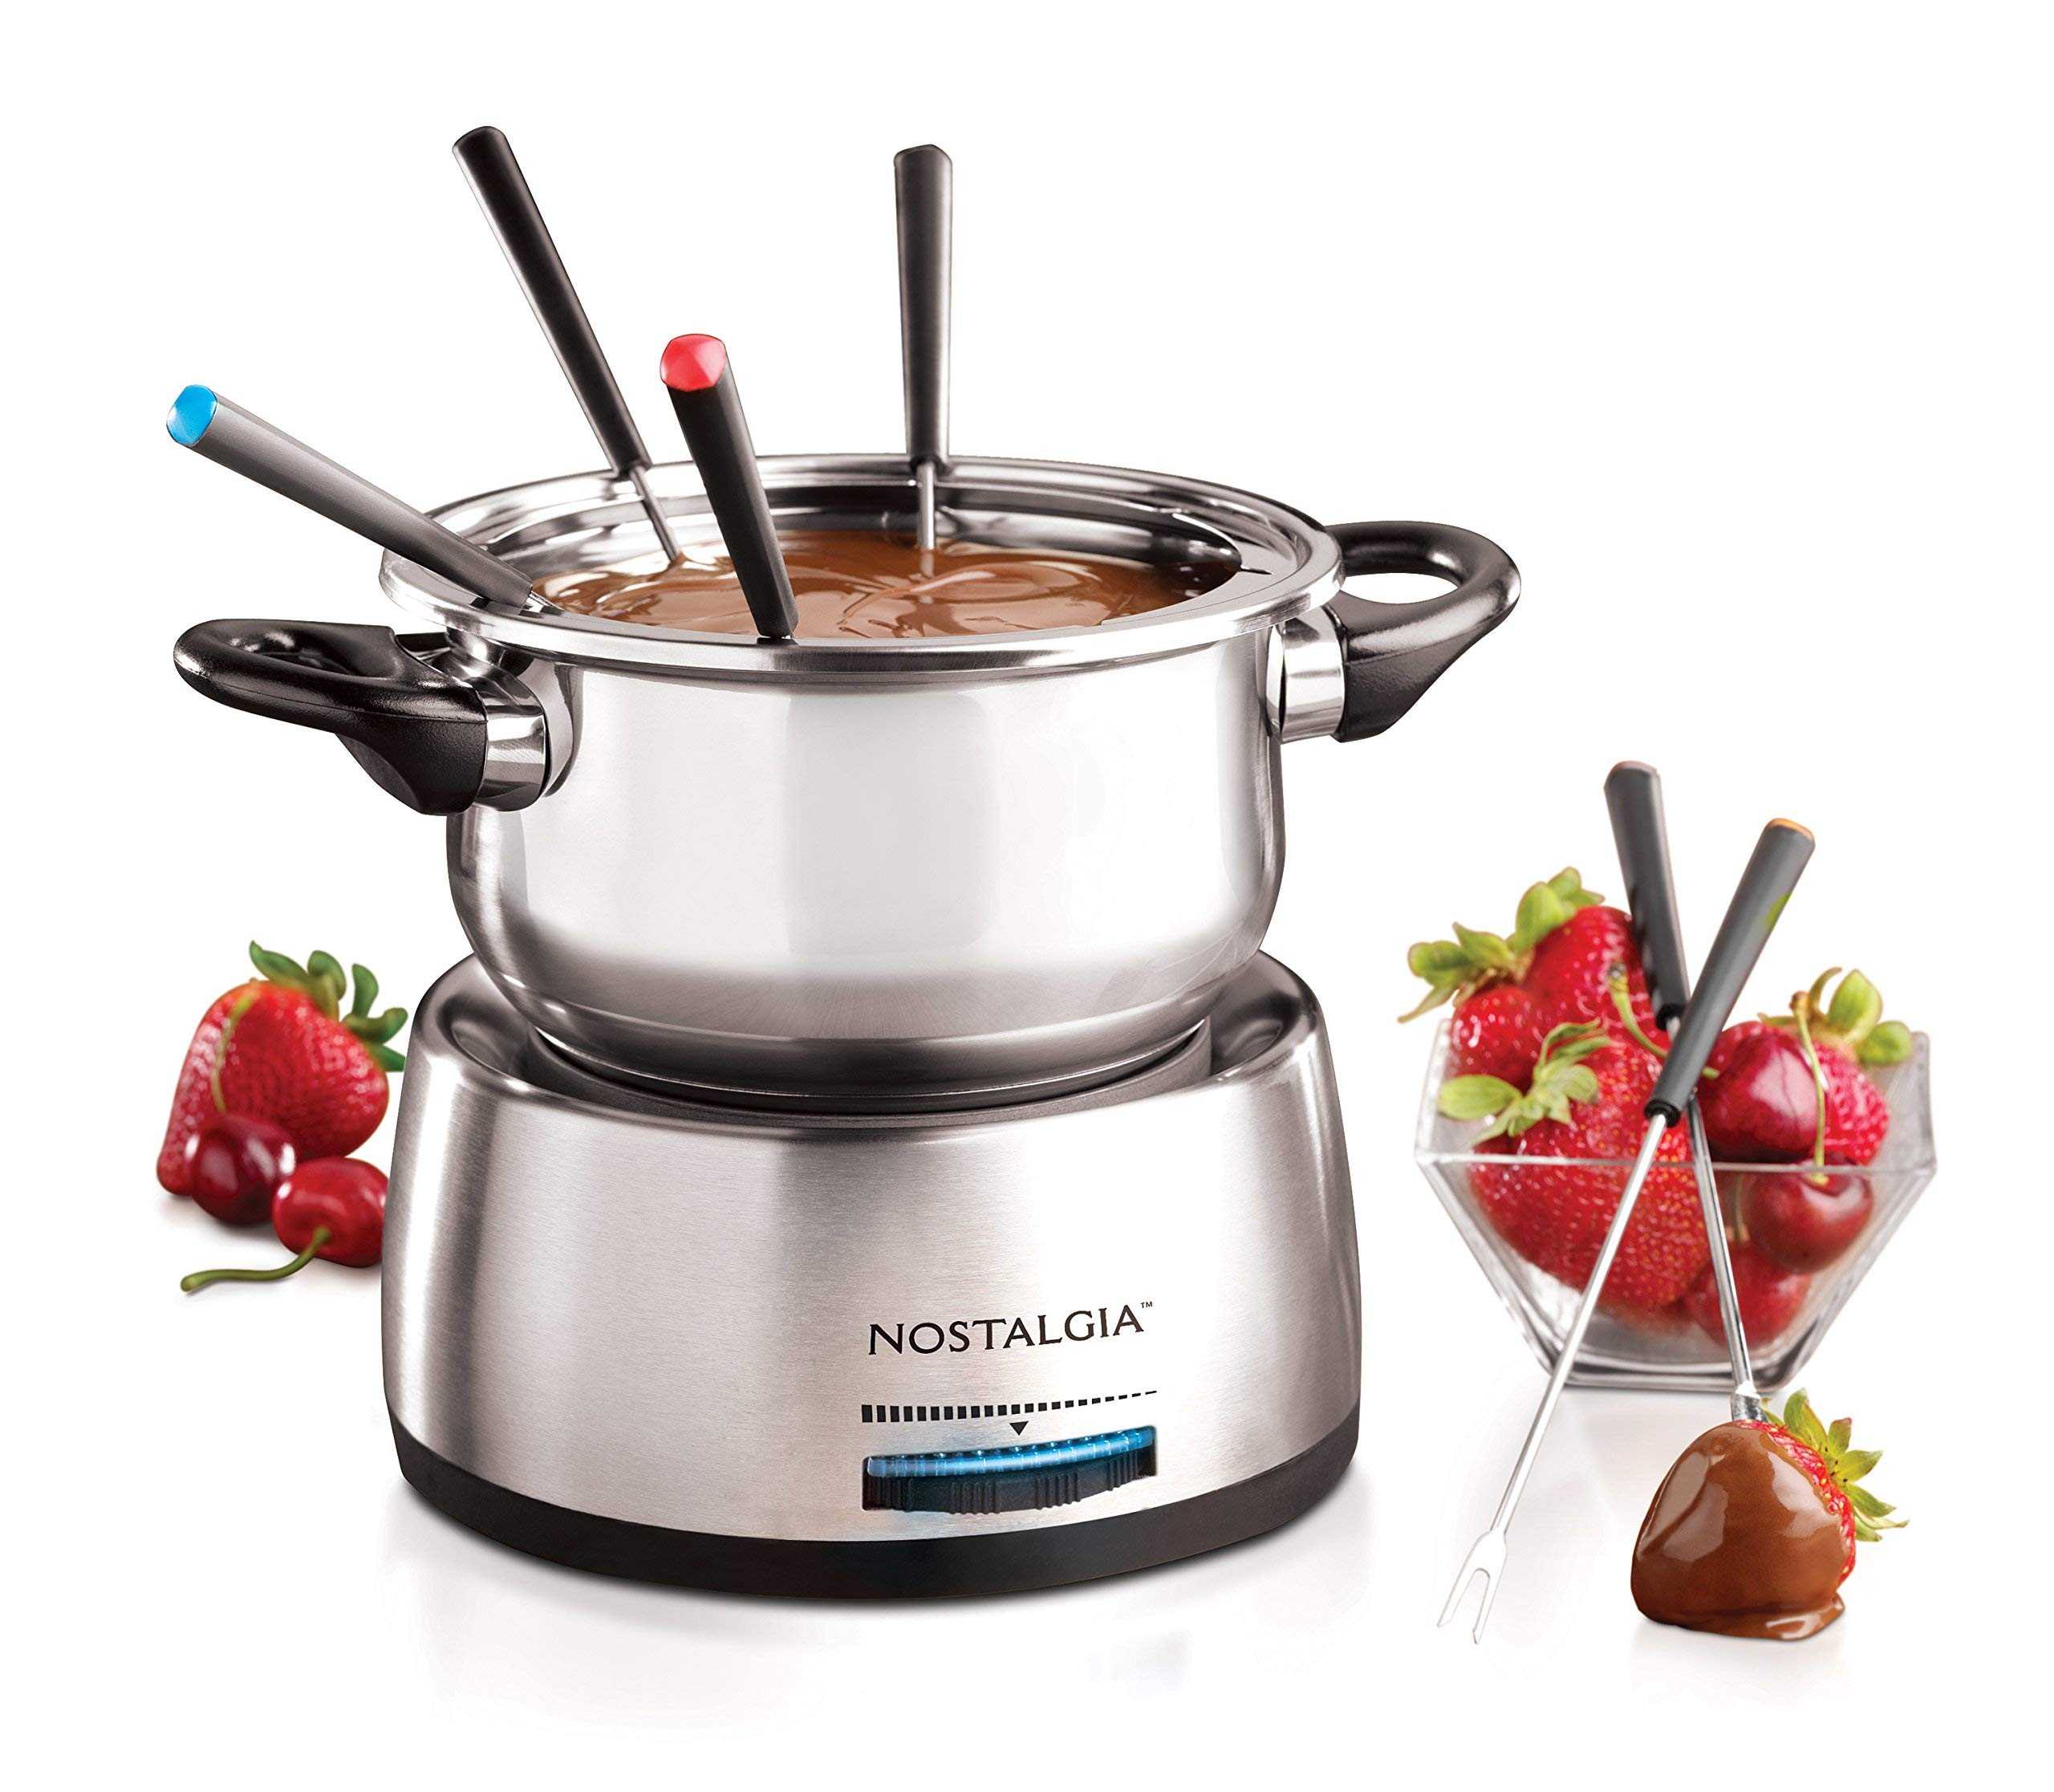 Nostalgia FPS200 6-Cup Stainless Steel Electric Fondue Pot (Renewed) by Nostalgia